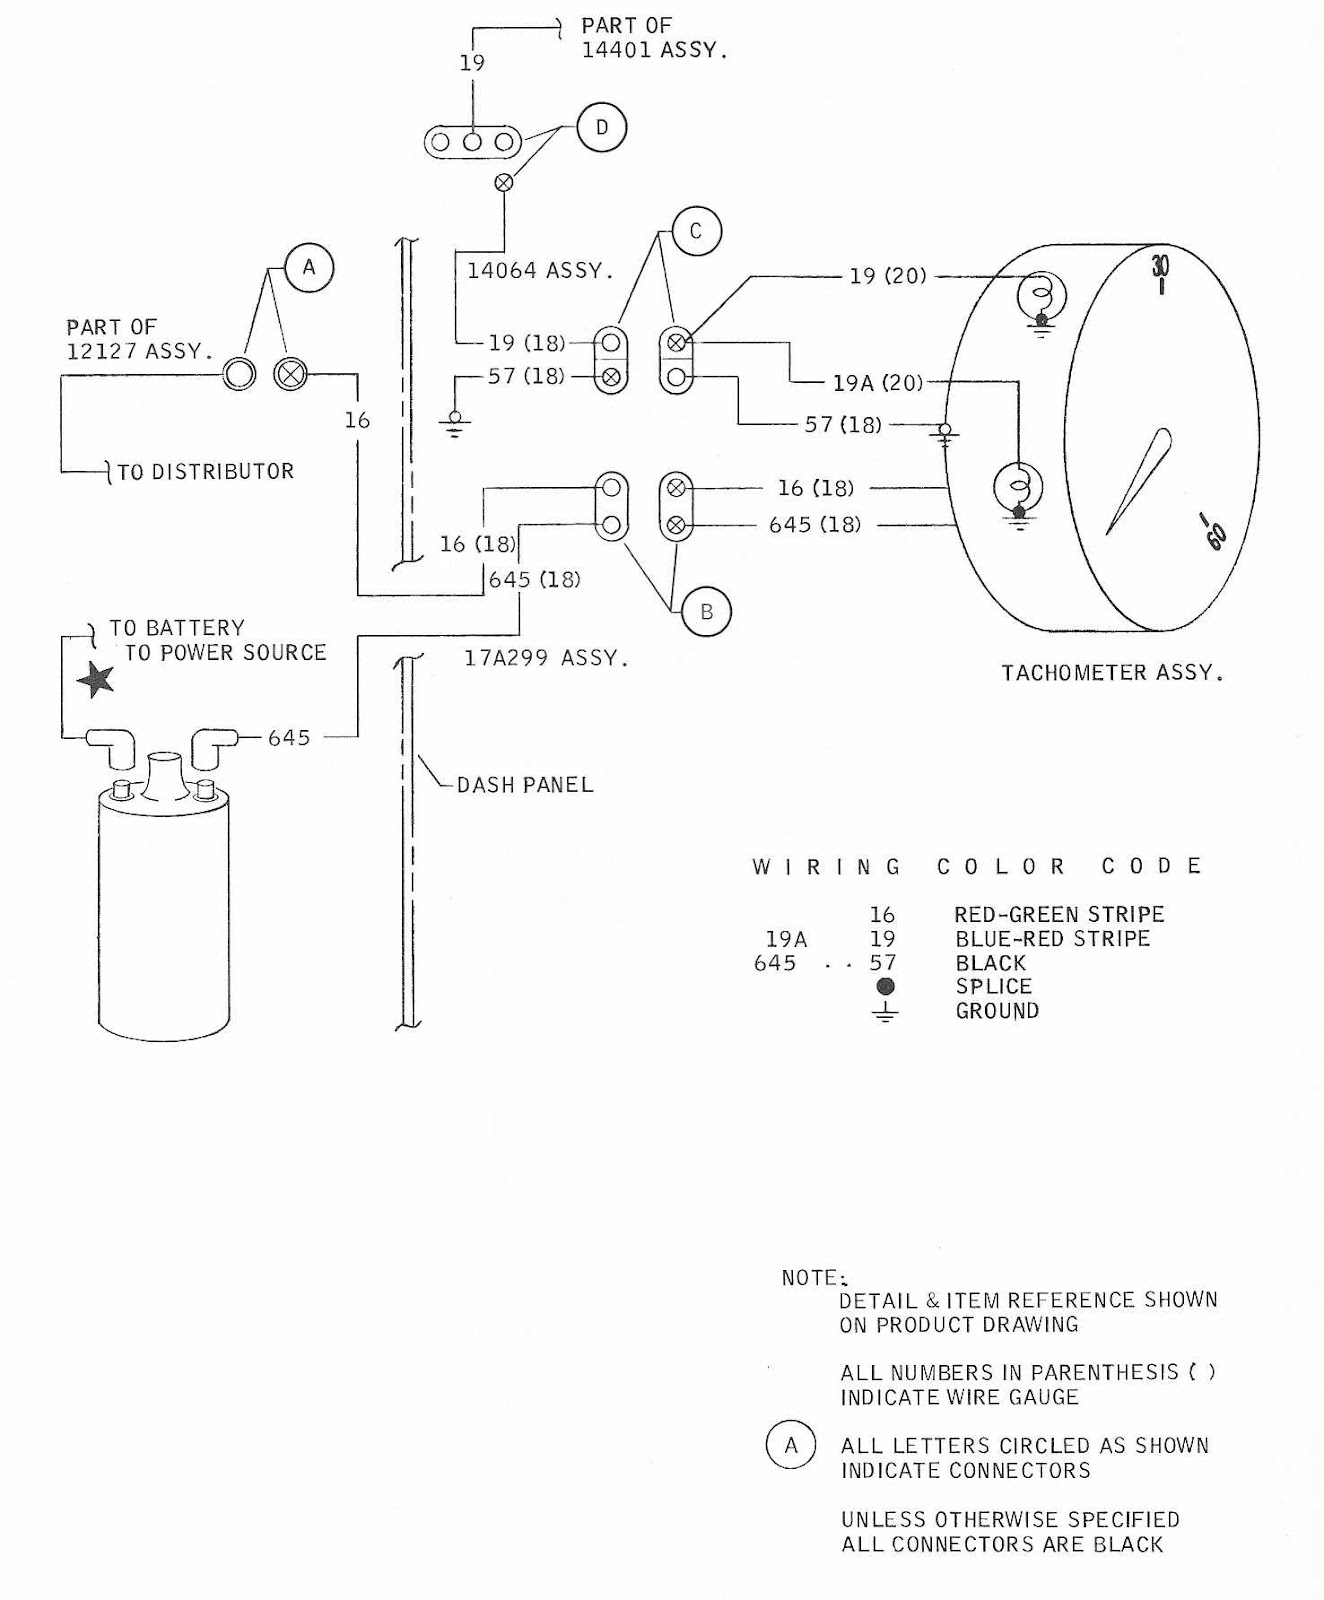 ford mustang 1968 tachometer wiring diagram all about wiring ford mustang 1968 tachometer wiring diagram